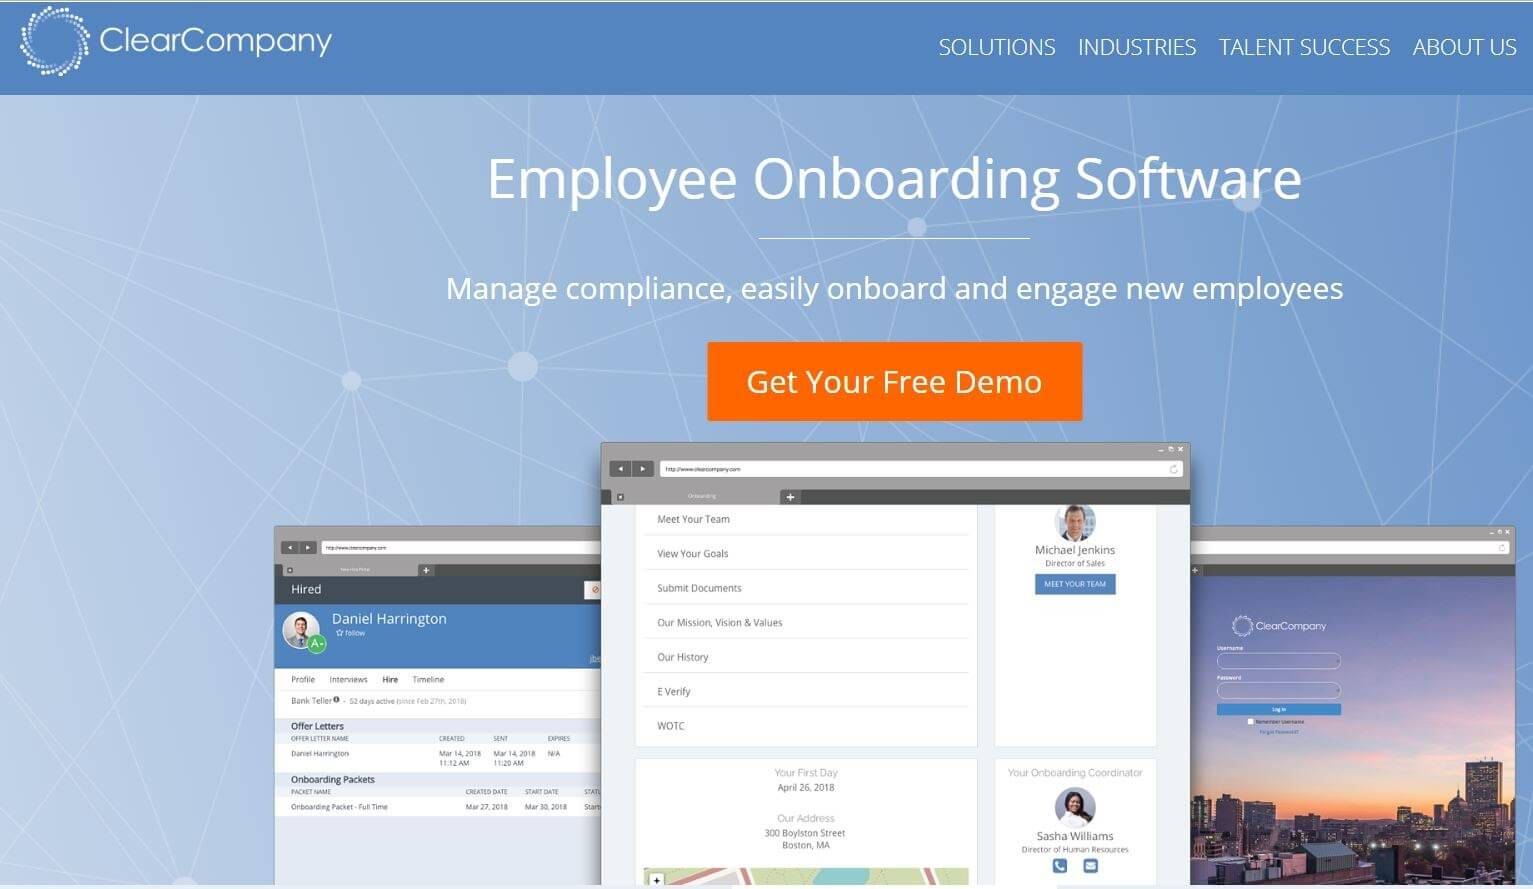 ClearCompany Employee Onboarding Tool